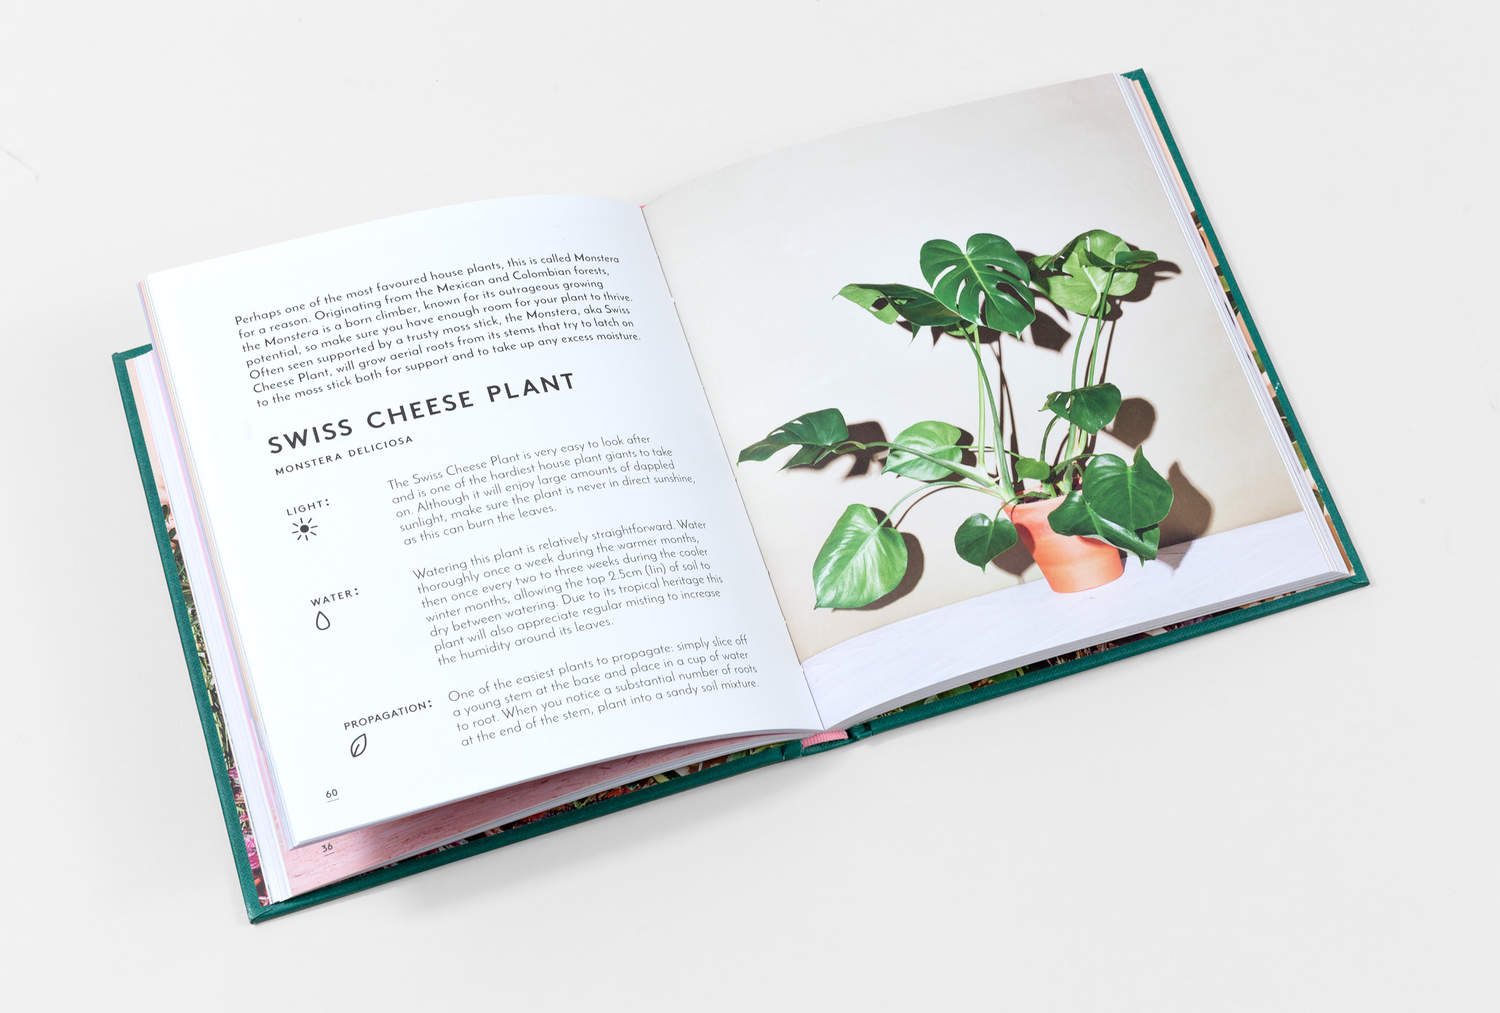 THE LITTLE BOOK OF HOUSE PLANTS BY EMMA SIBLEY